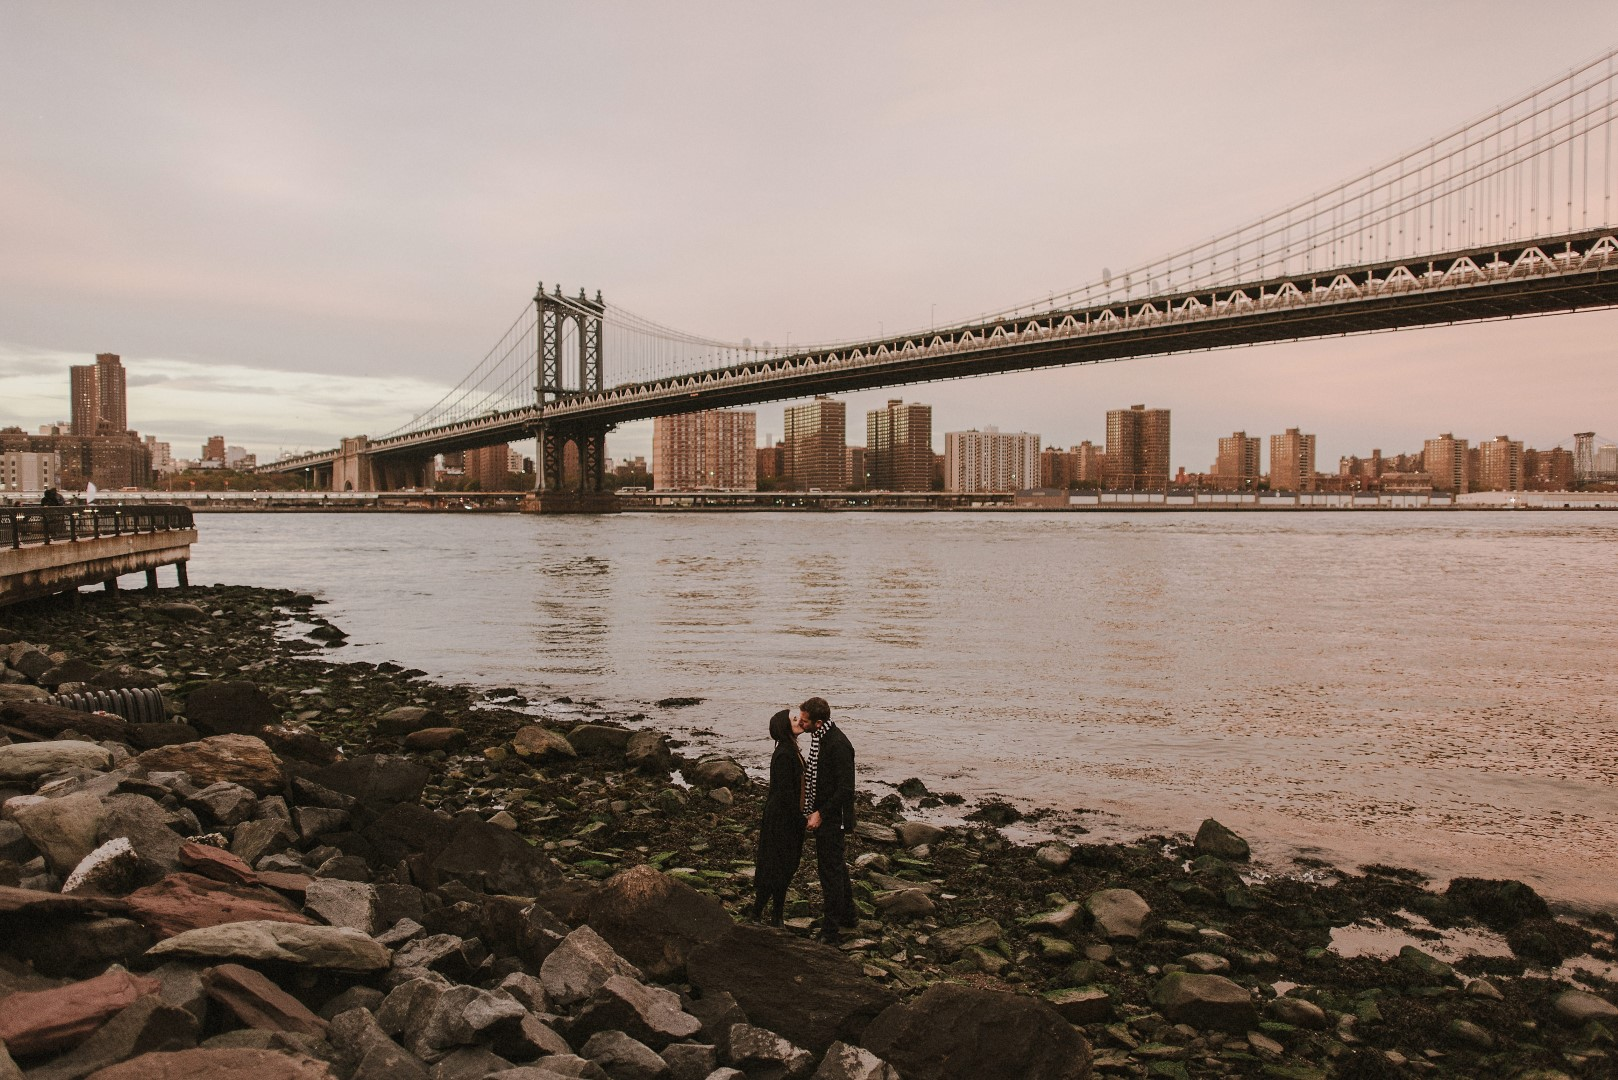 A photo from the New York Wedding Photosession by Marko Marinkovic. The couple is from New York. In the background is the bridge and they are on the shore kissing.